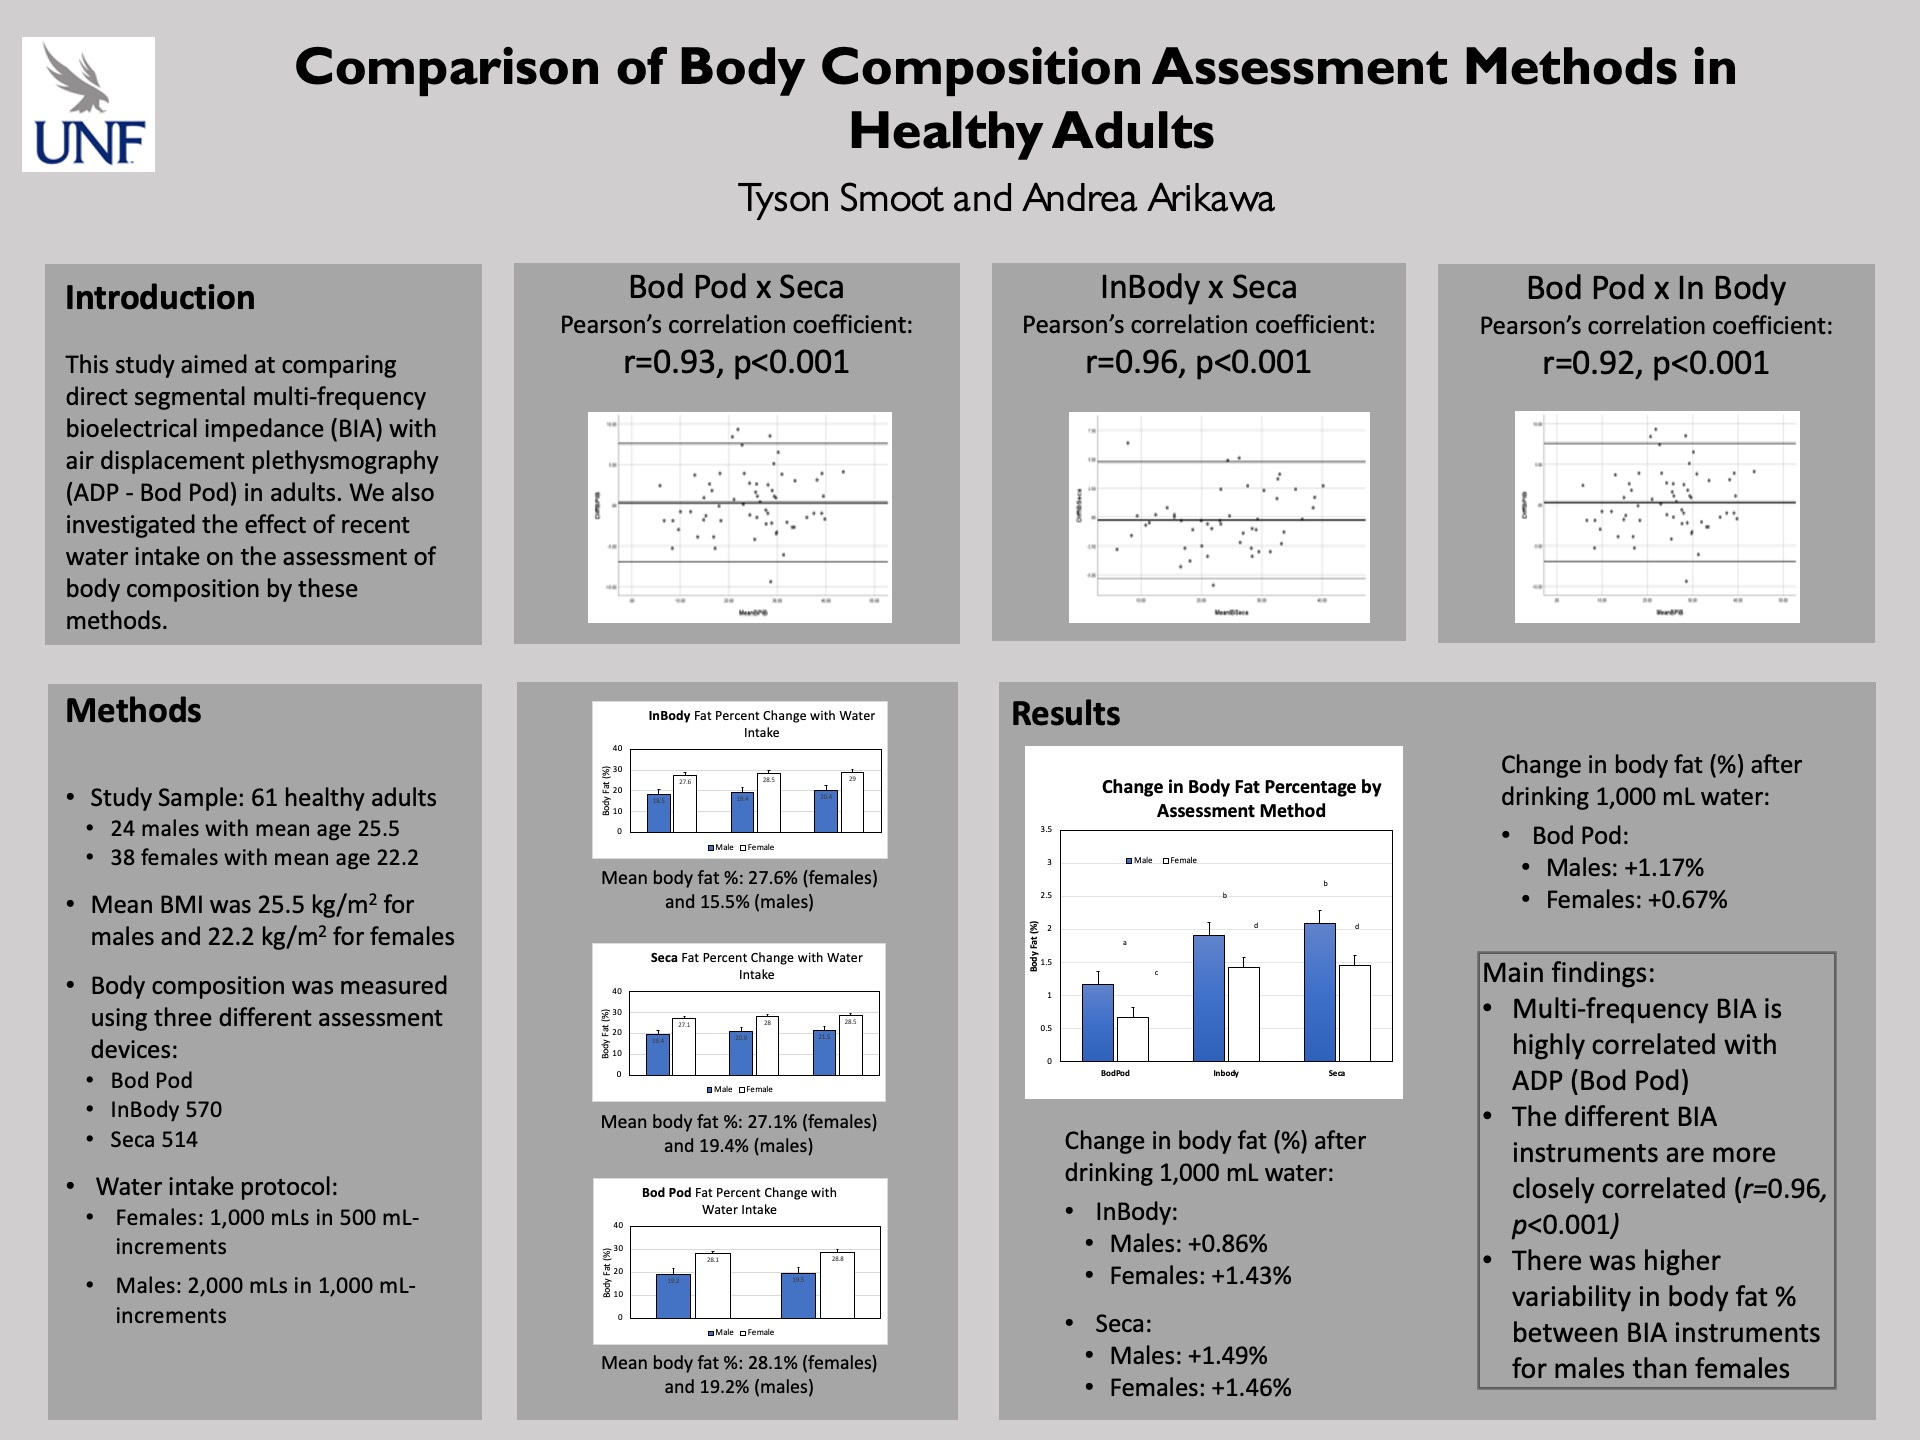 Comparison of Body Composition Assessment Methods in Healthy Adults poster